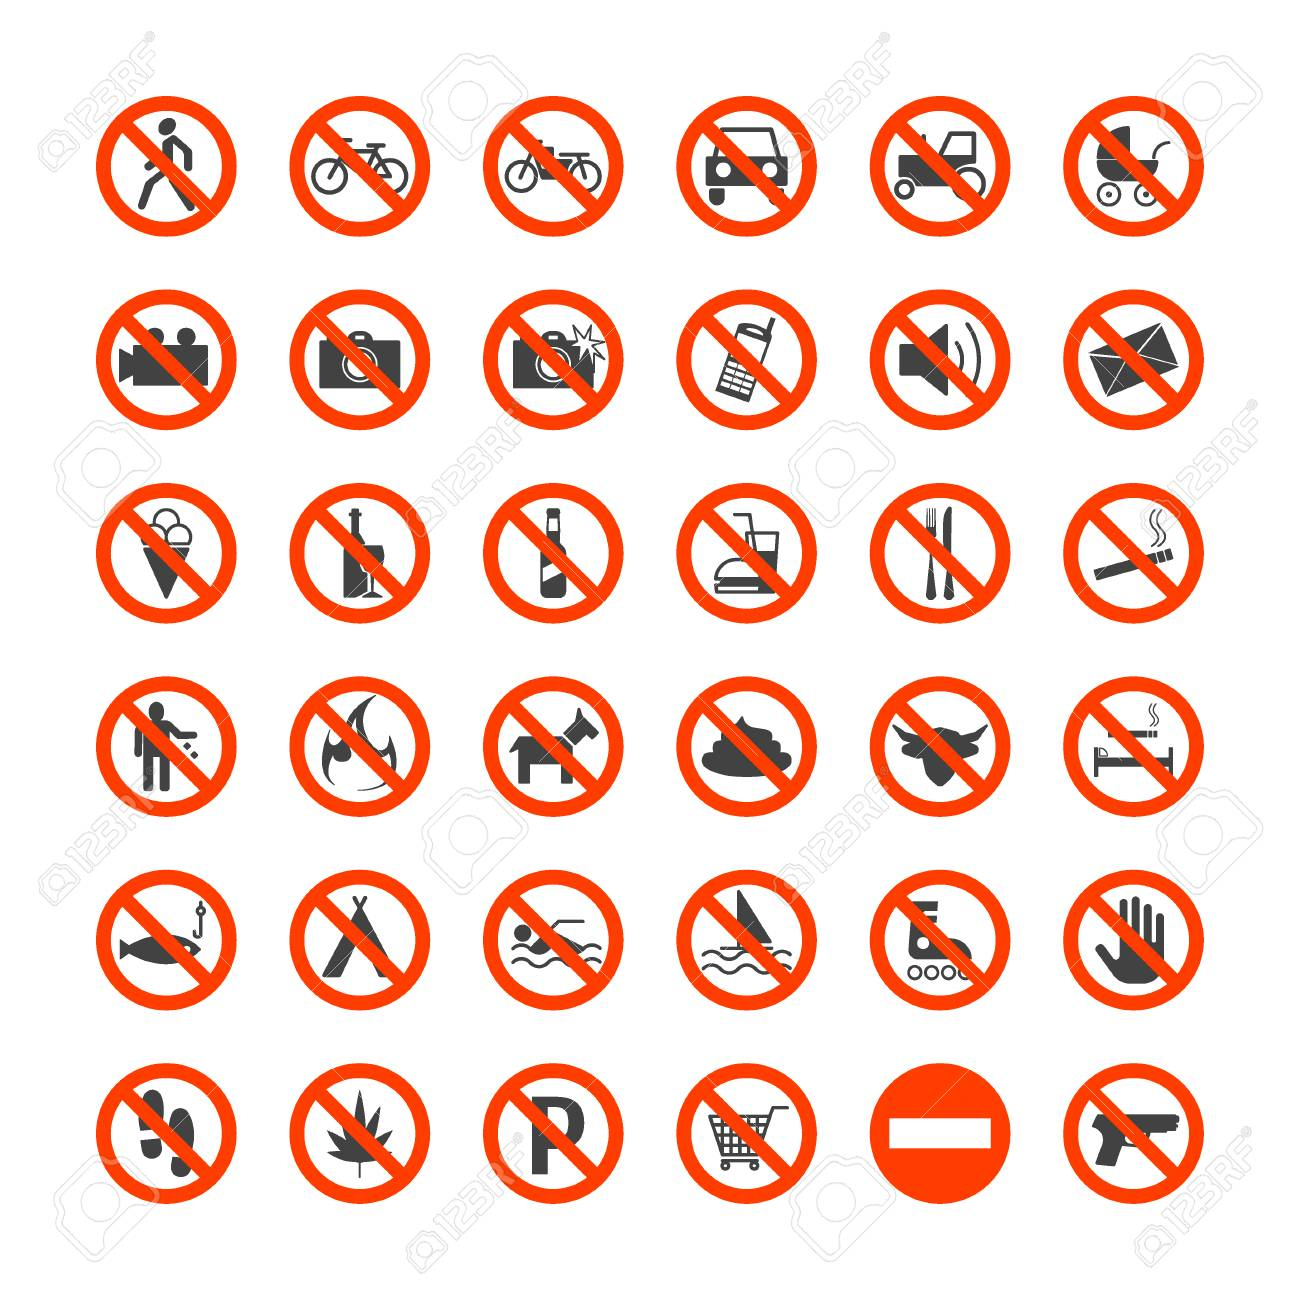 Prohibition Signs Icons Set Isolated On White Background Danger Electrical Symbol Icon A Stock Vector Illustration